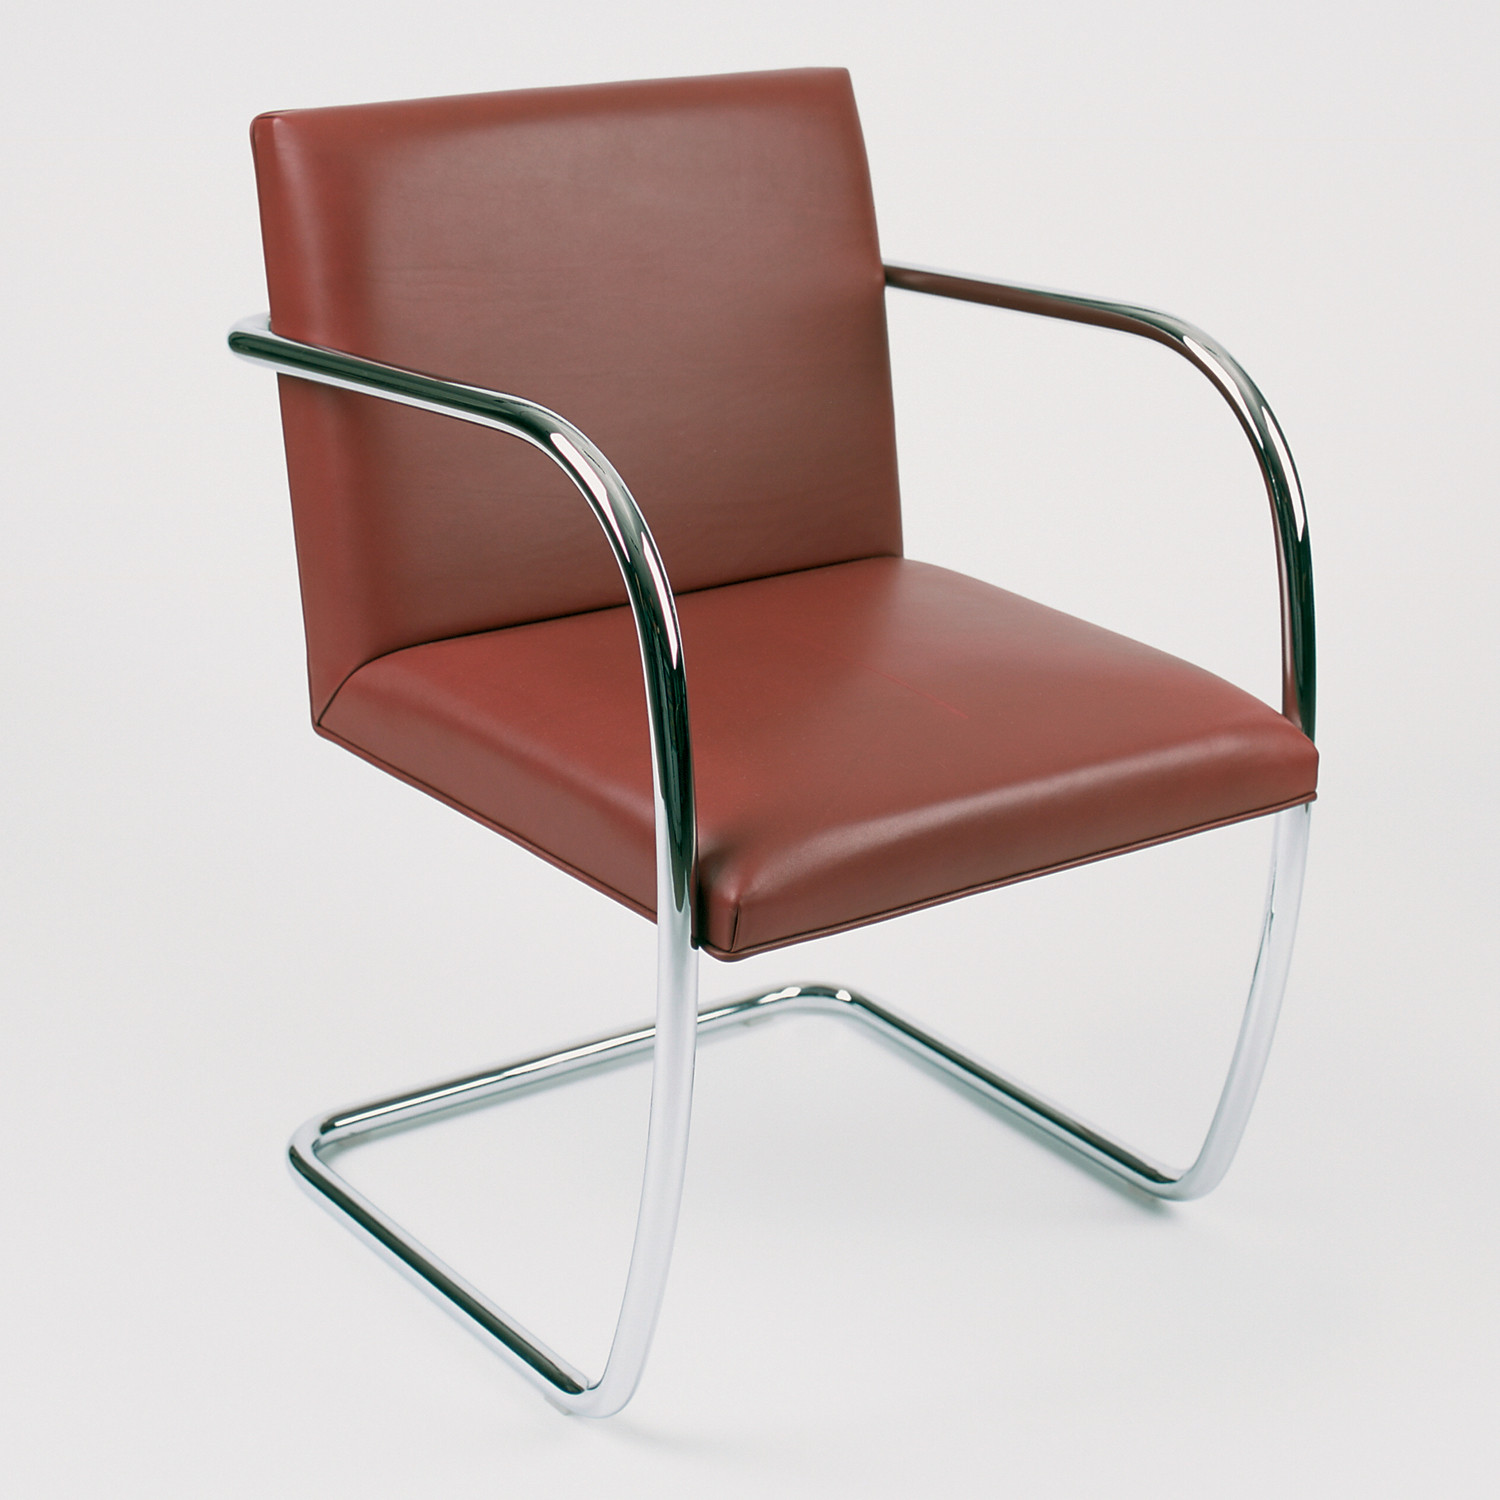 Knoll Tubular Brno Chair in Spinneybeck Leather